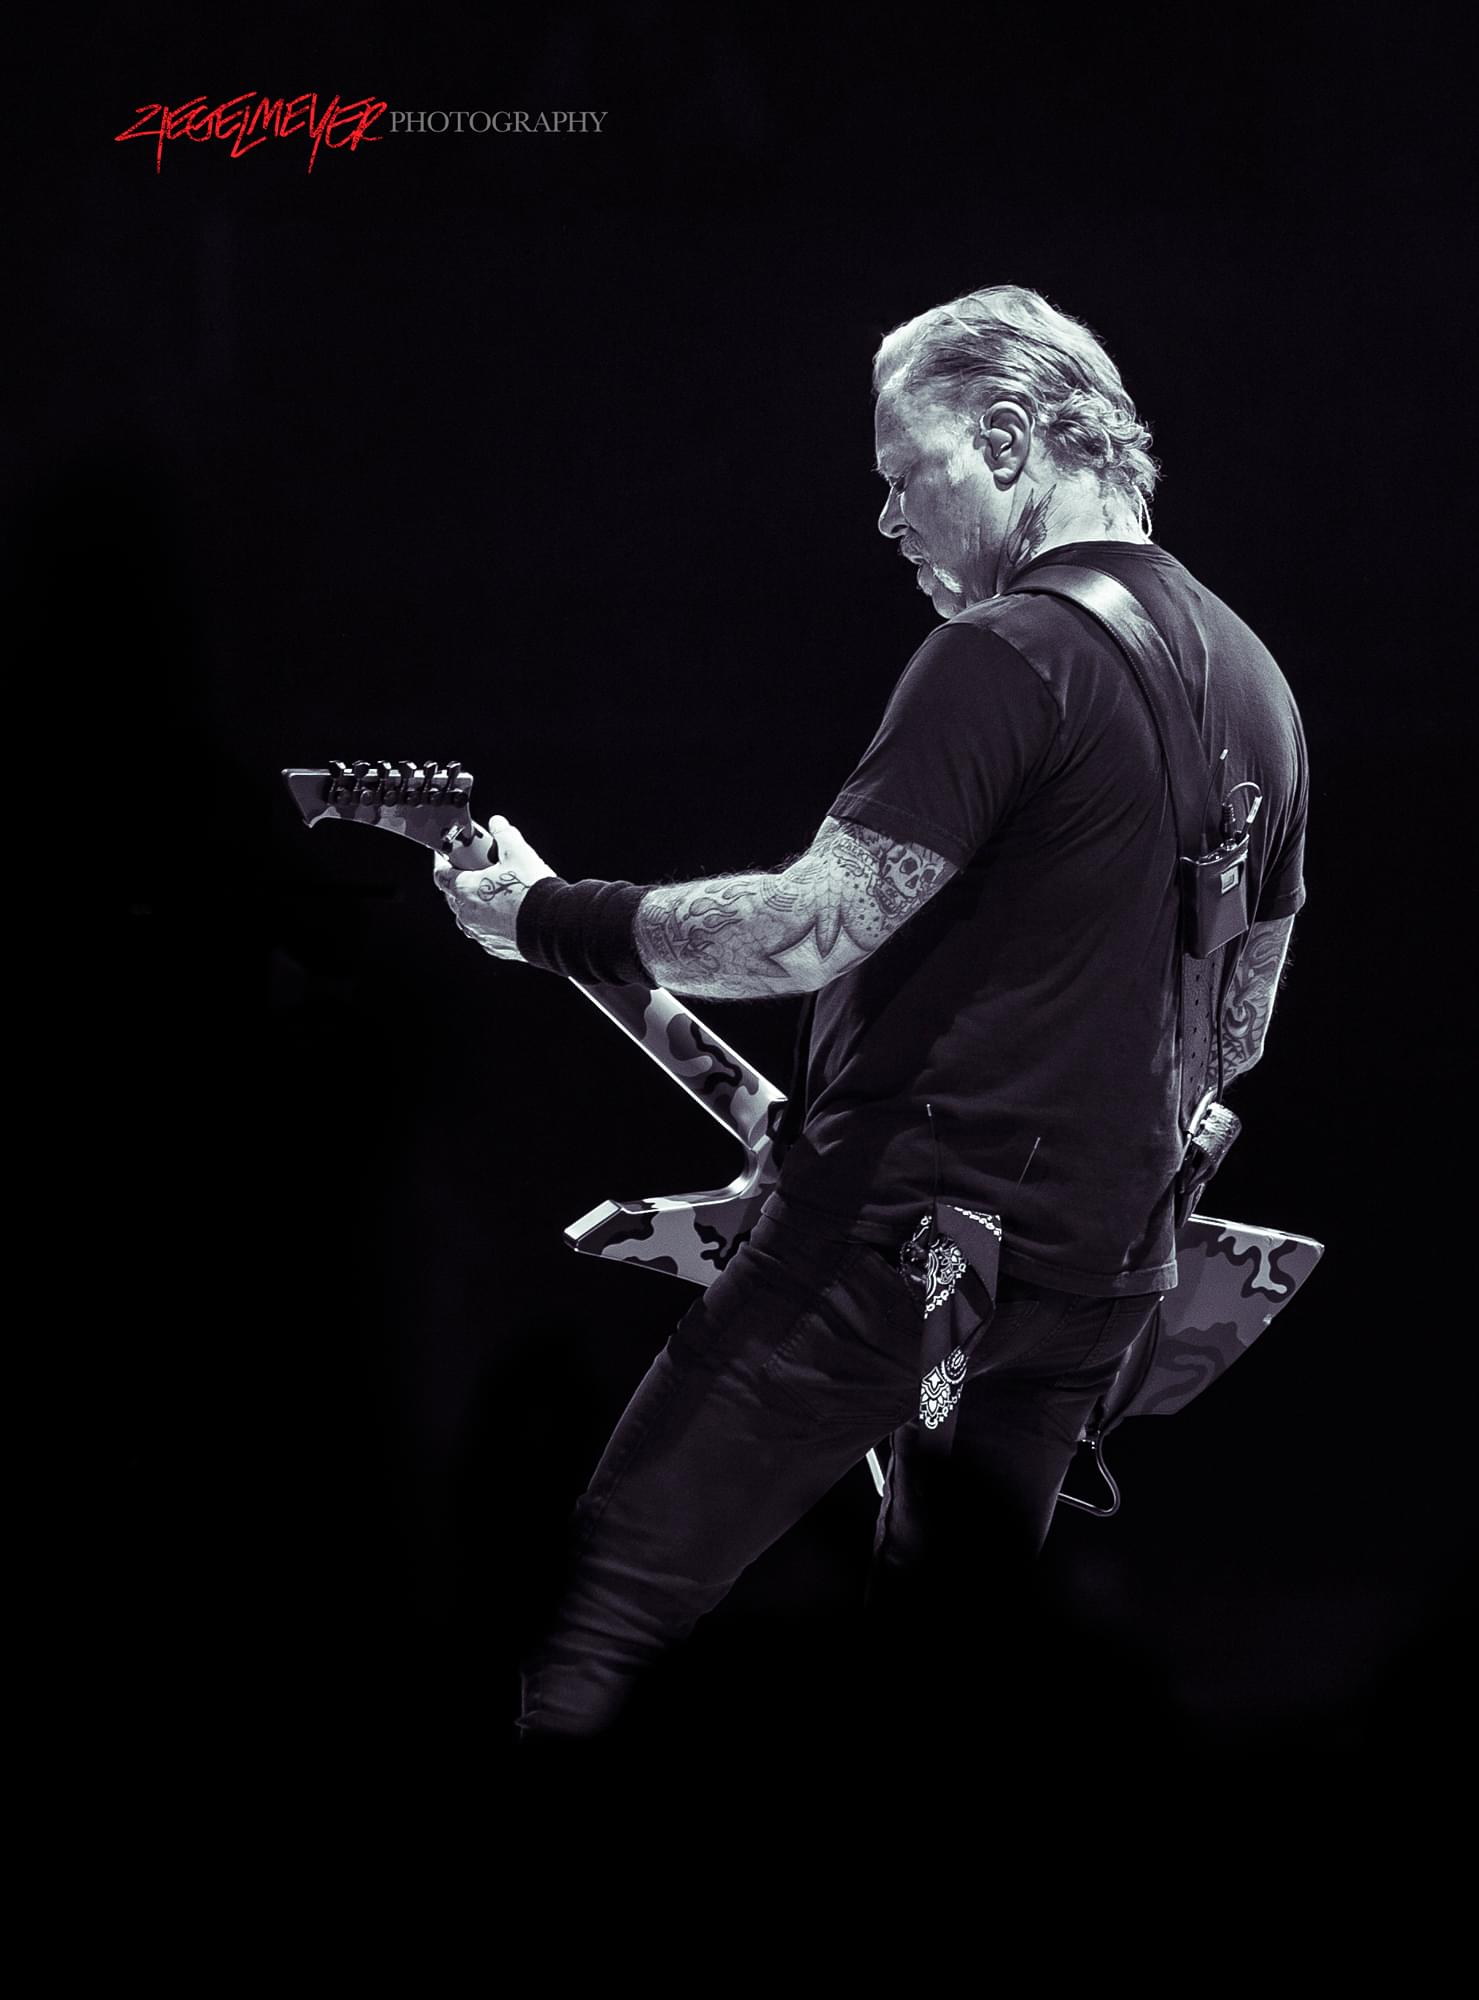 Metallica_James_Hetfield©2019_Steve_Ziegelmeyer-5543